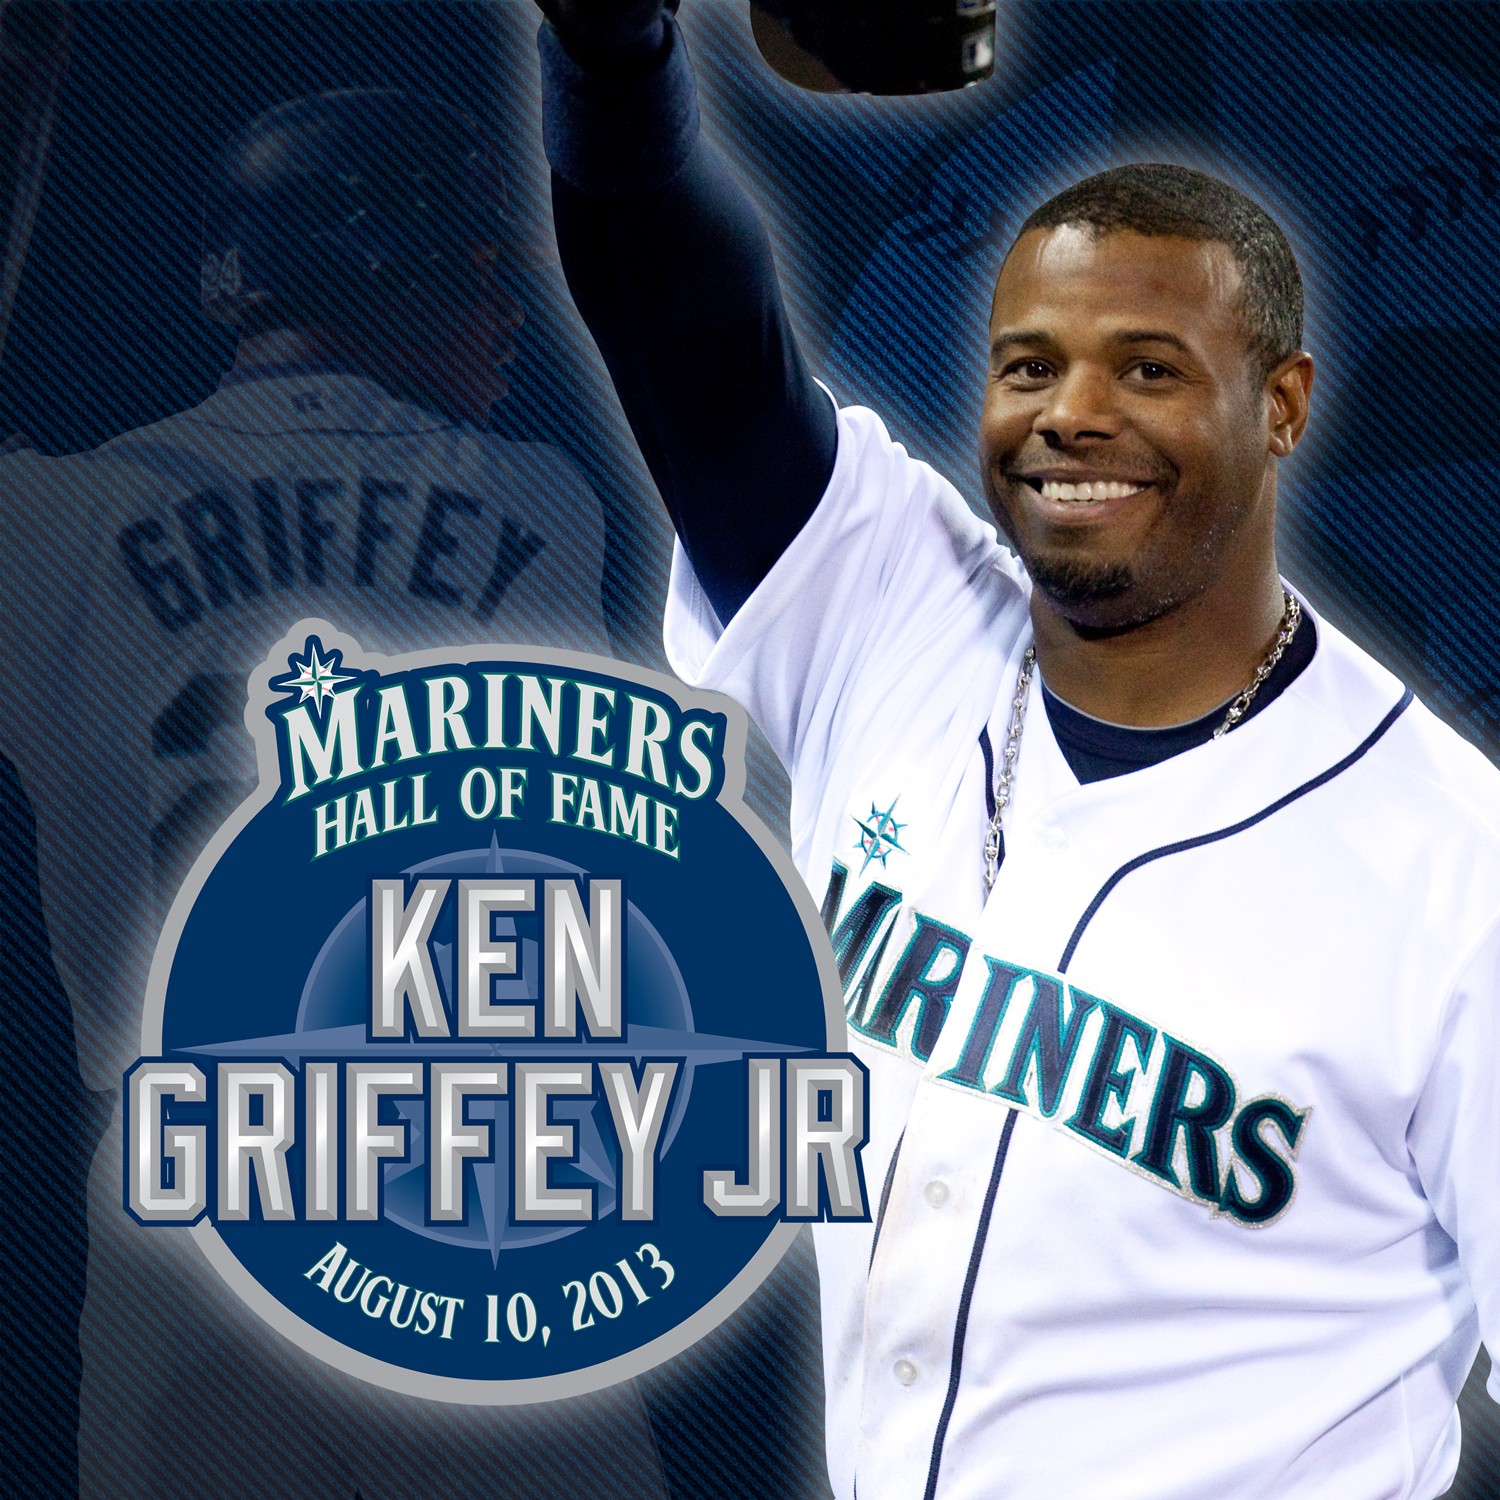 size 40 a5899 2f54f Ken Griffey Jr. To Join Mariners Hall of Fame - From the ...